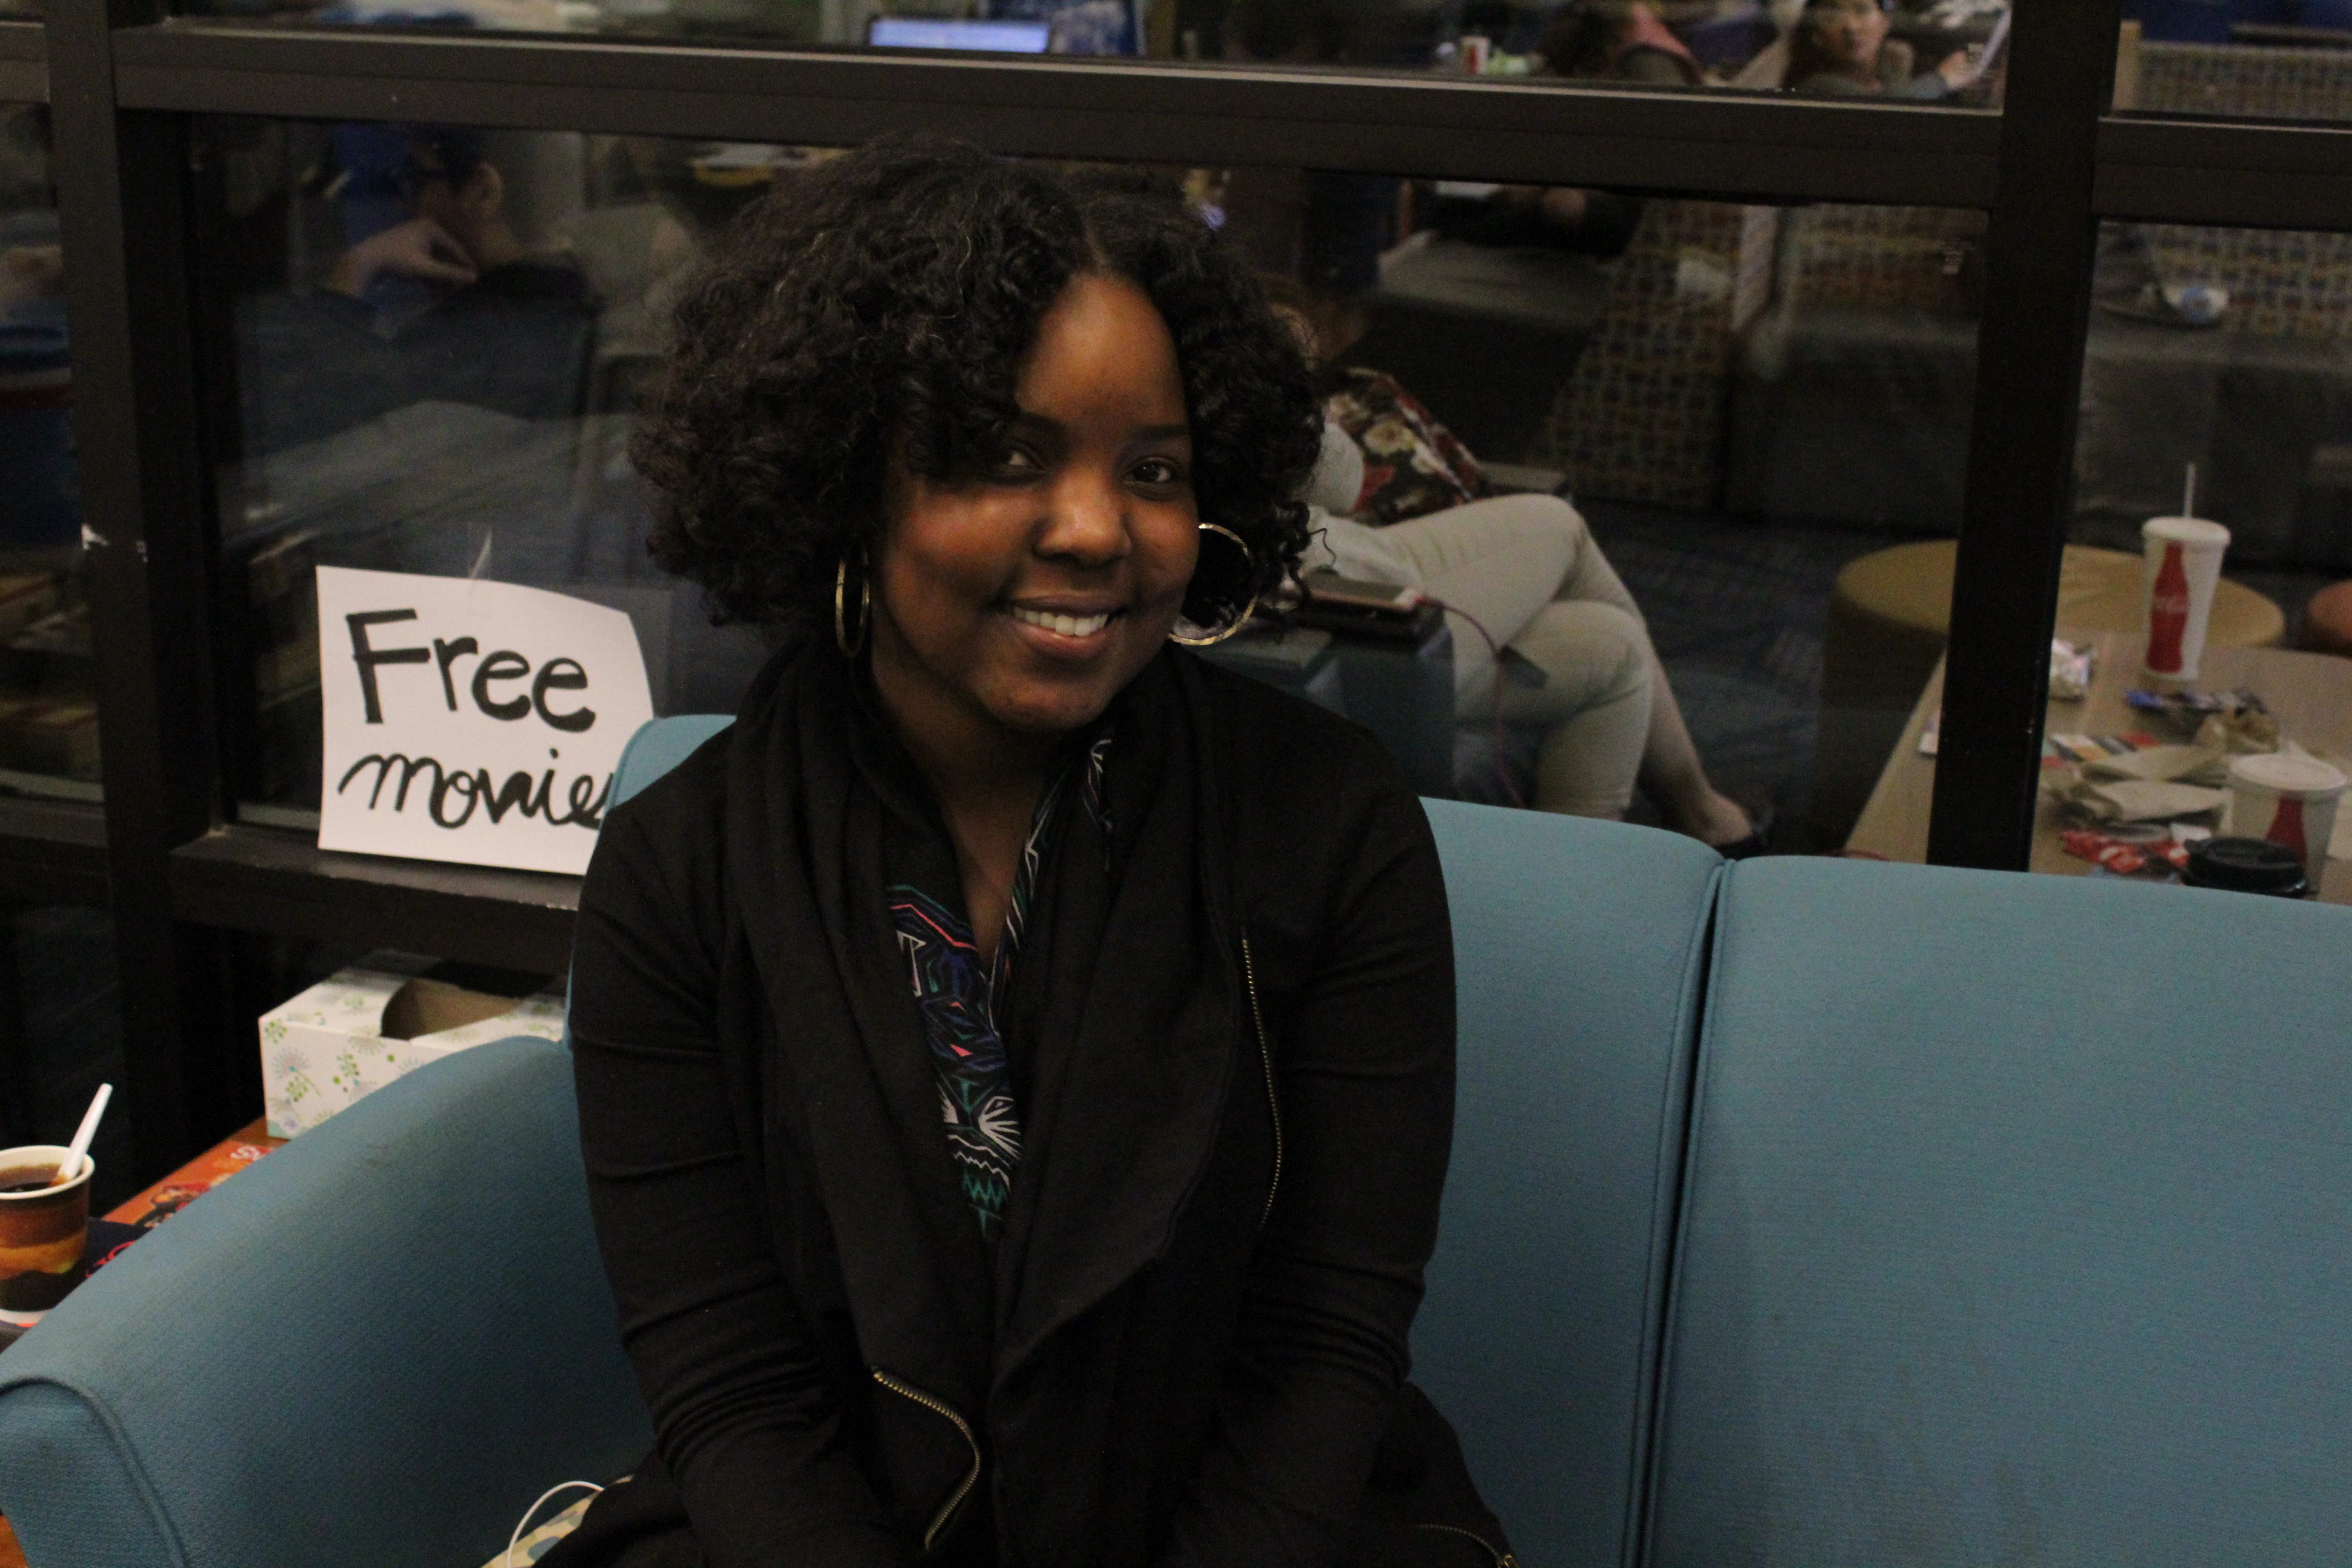 Student earns NYC internship